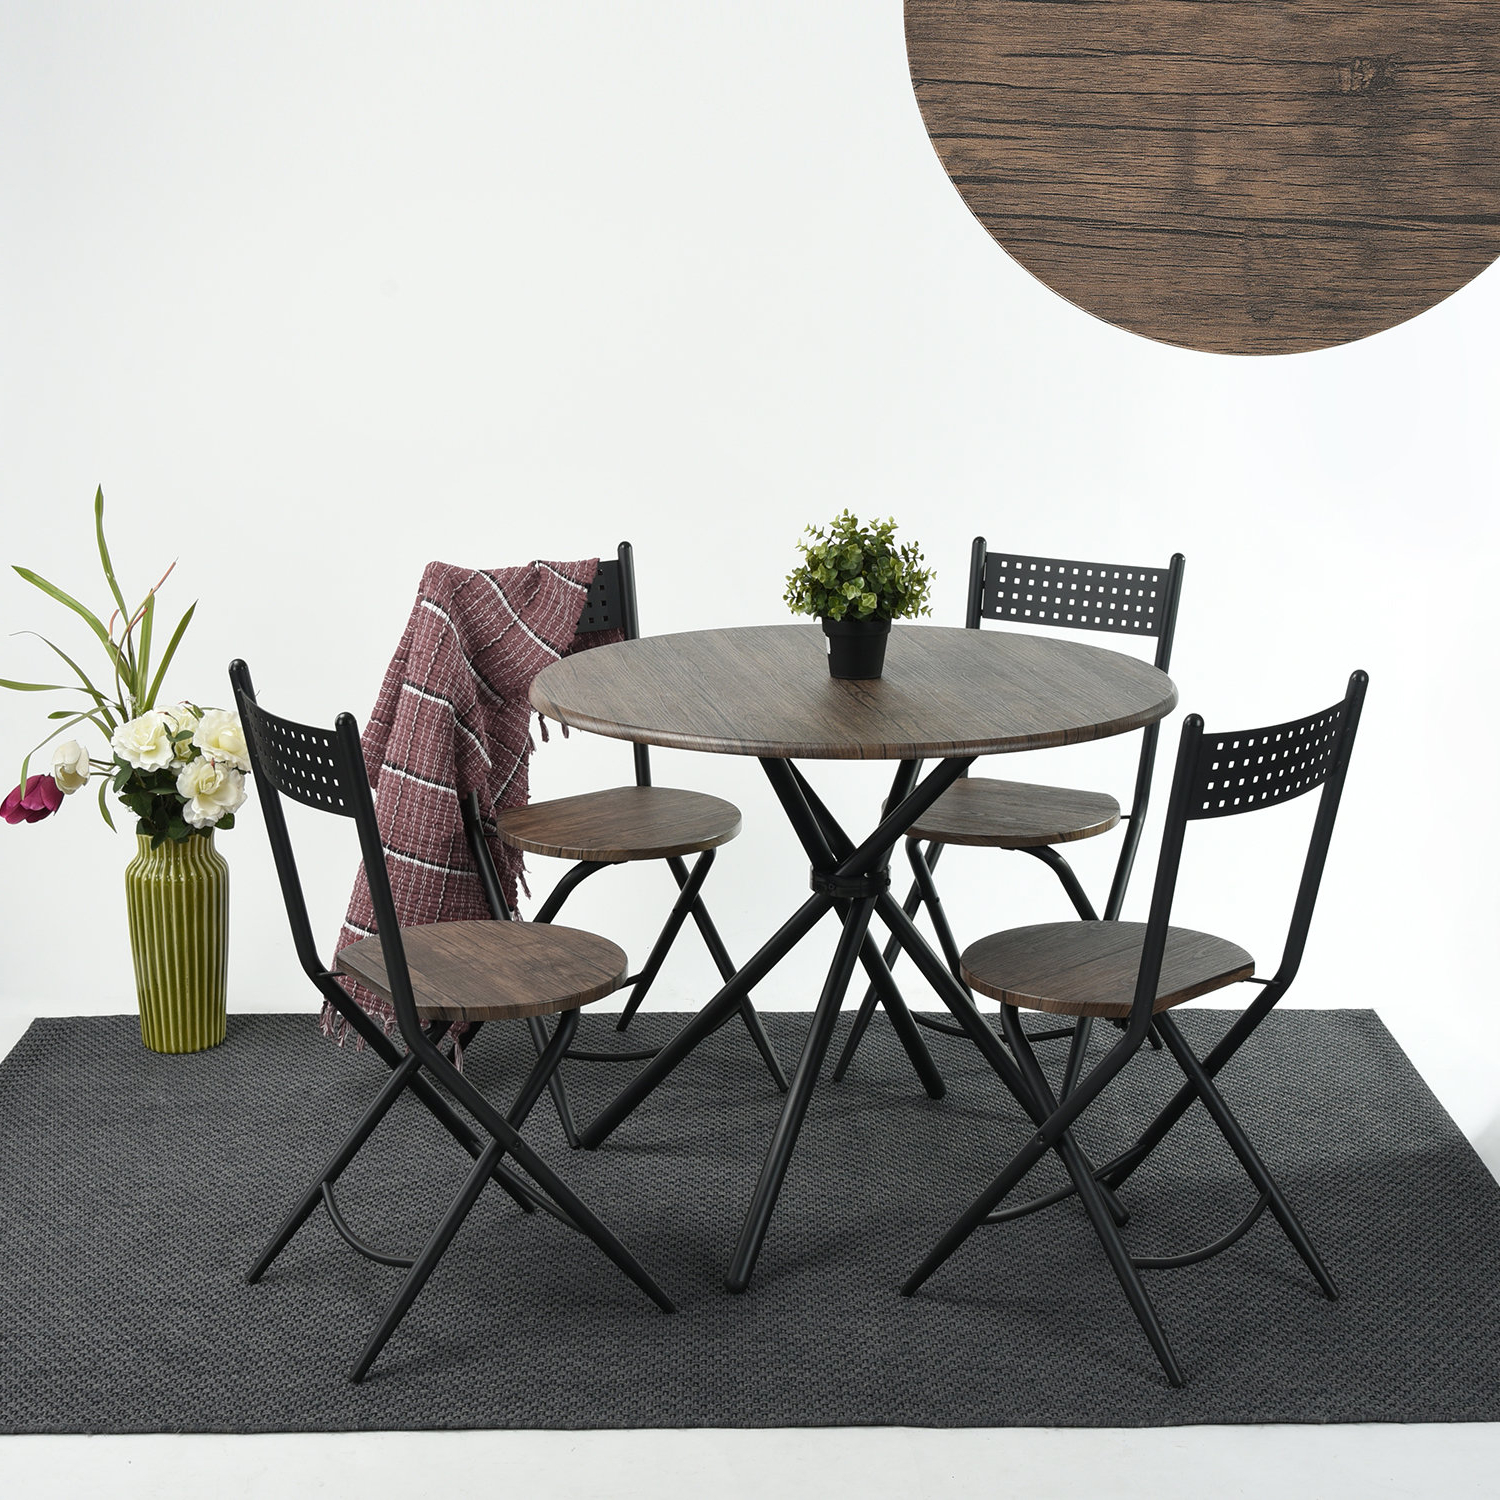 Rossi 5 Piece Dining Sets With Regard To Most Recently Released Wrought Studio Burdett 5 Piece Dining Set (View 17 of 20)